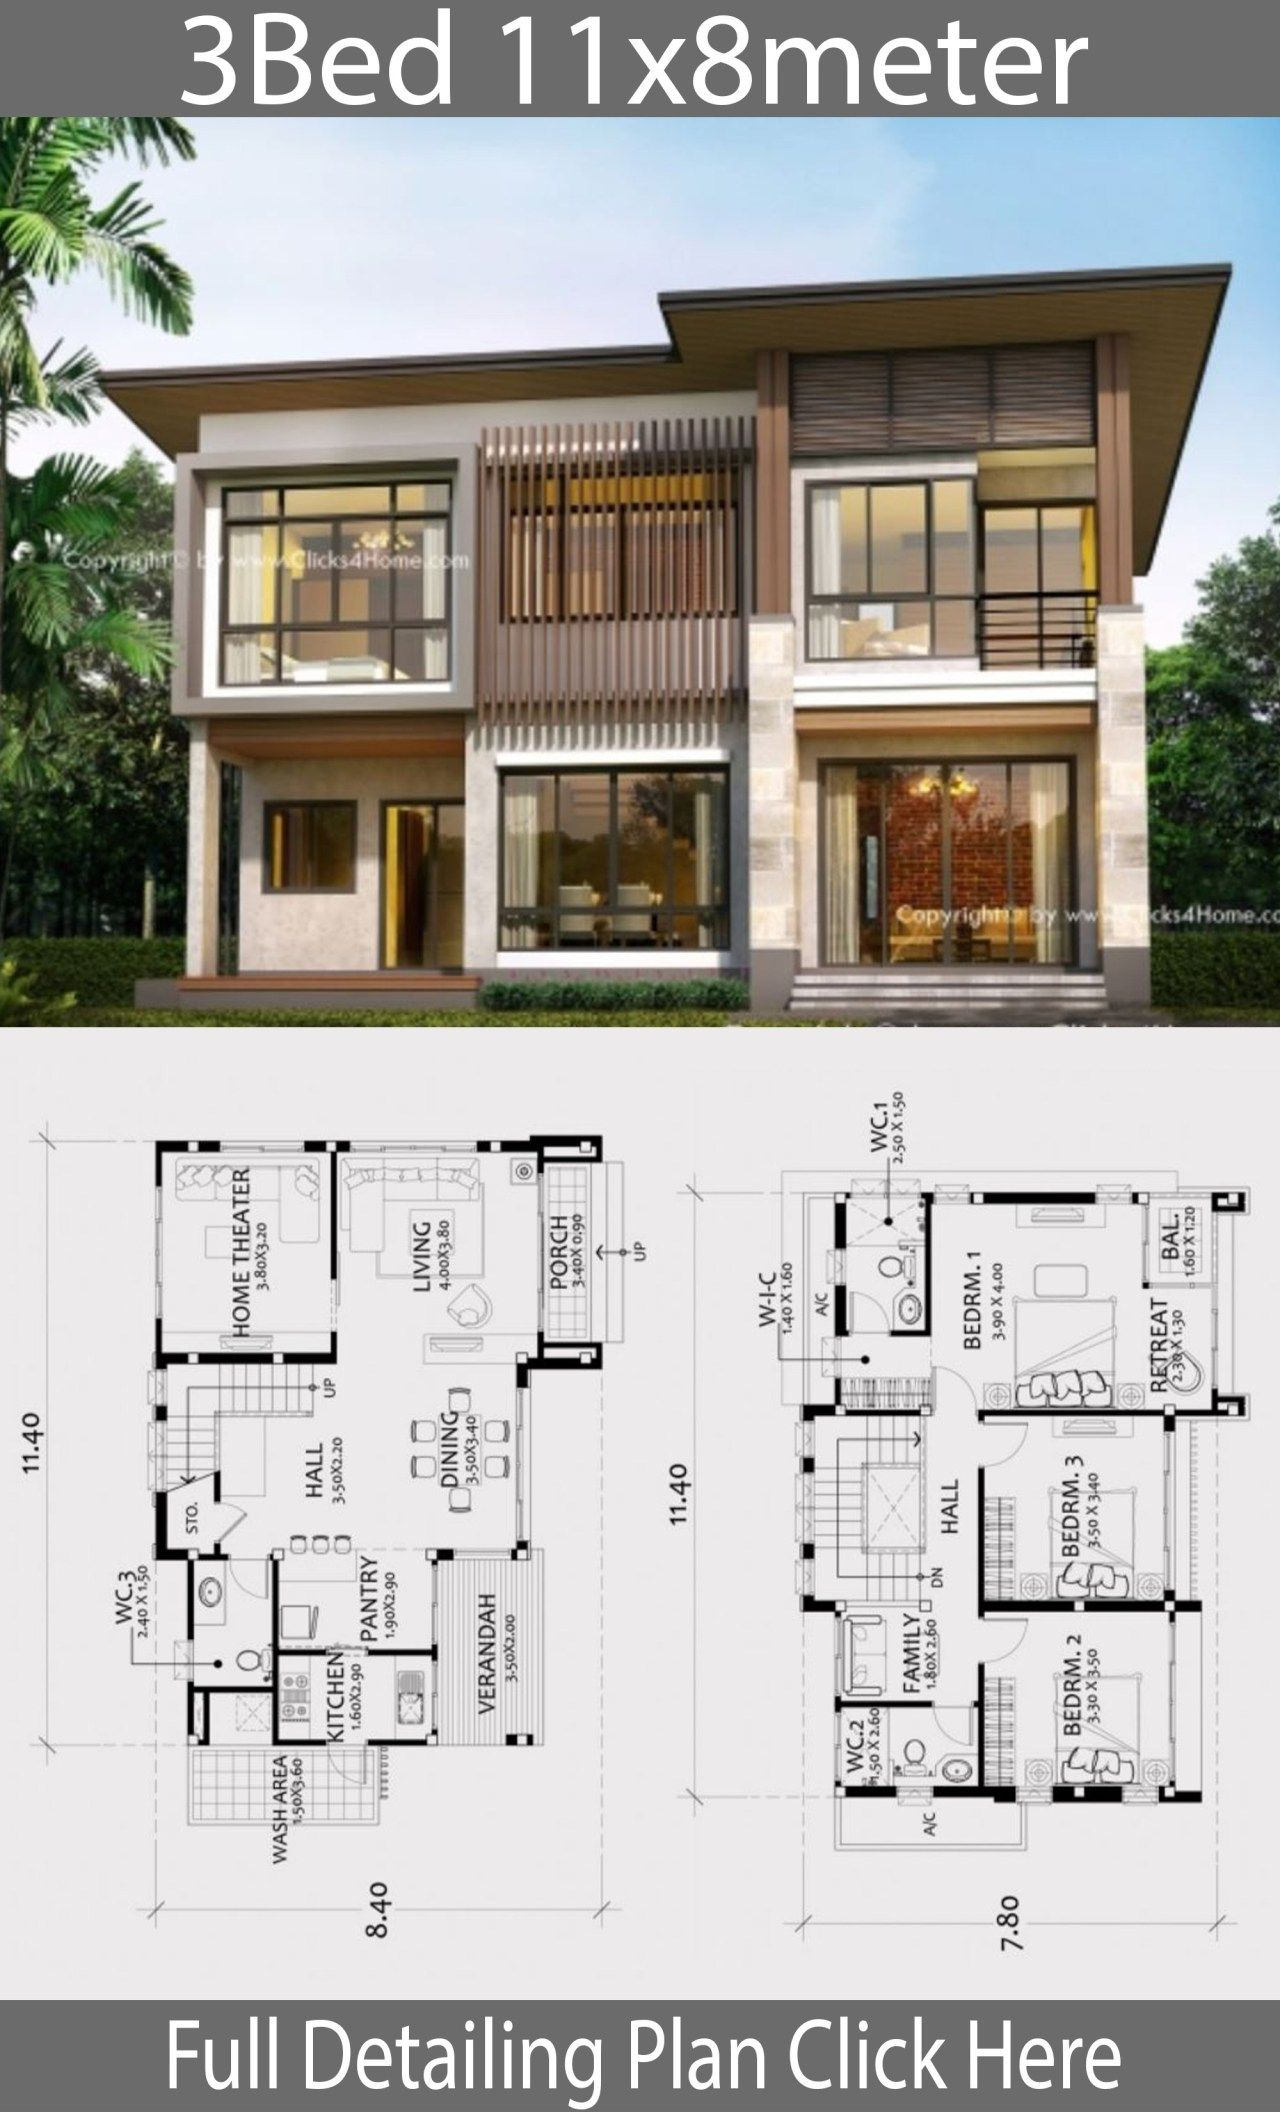 Home Design Plan 11x8m With 3 Bedrooms Home Ideas Mediterranean Homes Mediterranean Homes Exterior Architectural House Plans